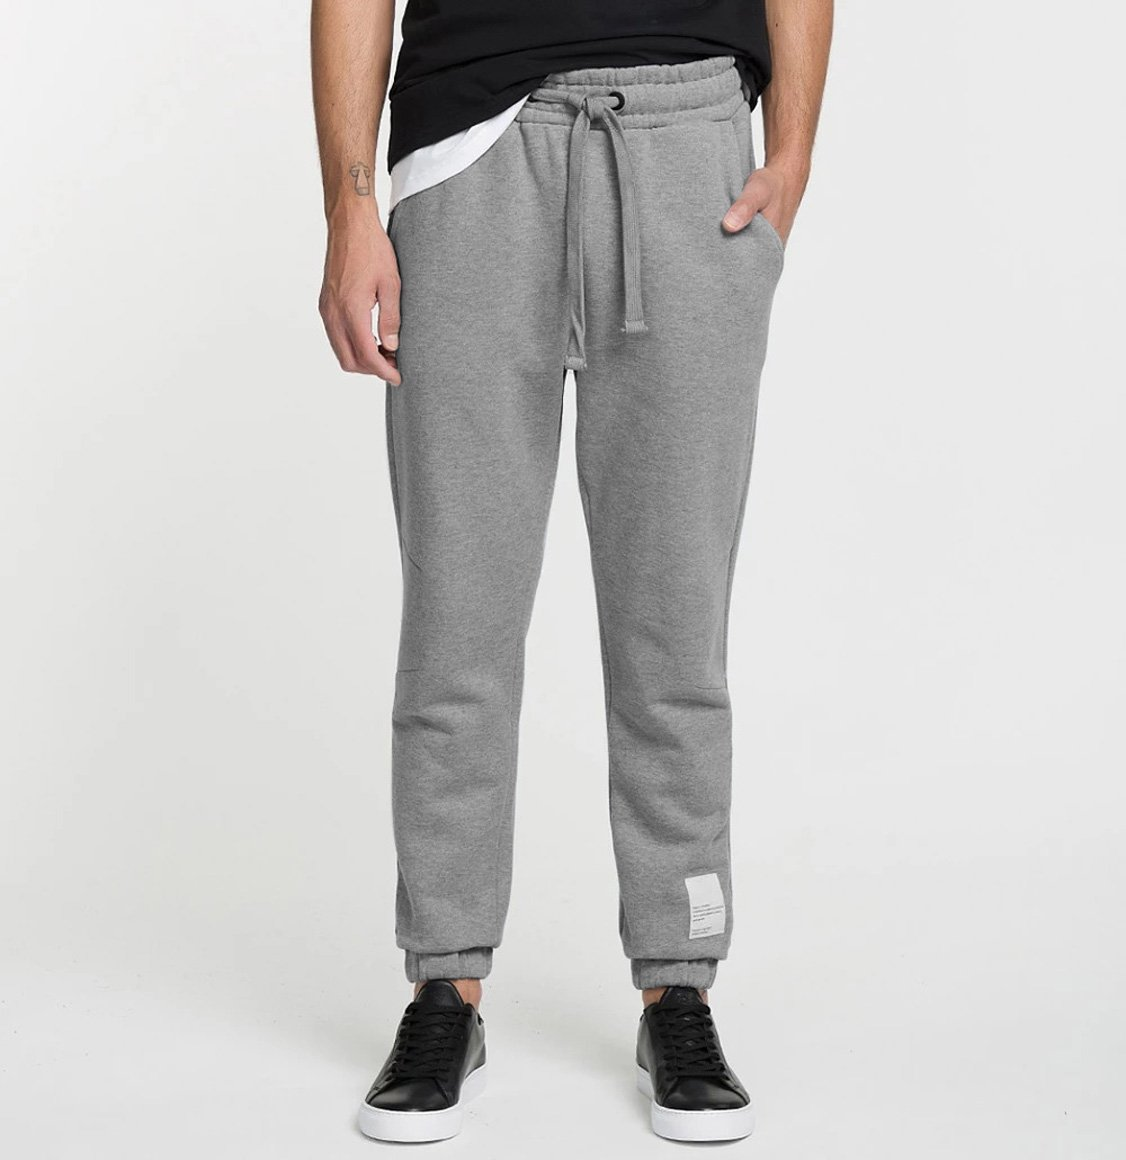 The Project Garments Logomania Regular Fit Cotton Sweatpants Melange Grey